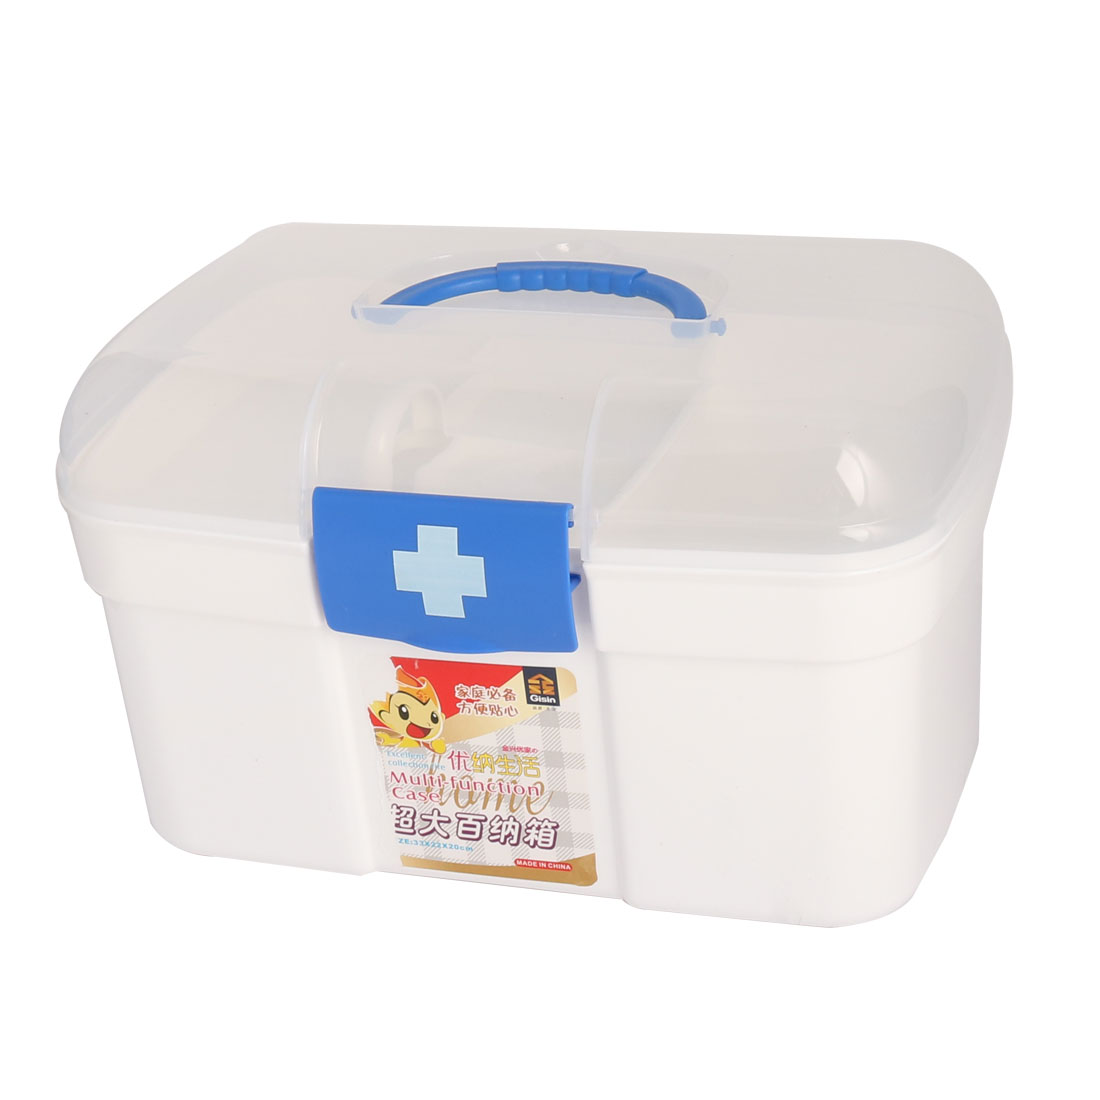 Plastic Family Medicine Pill First Aid Emergency Kit Box Case Container  Storage